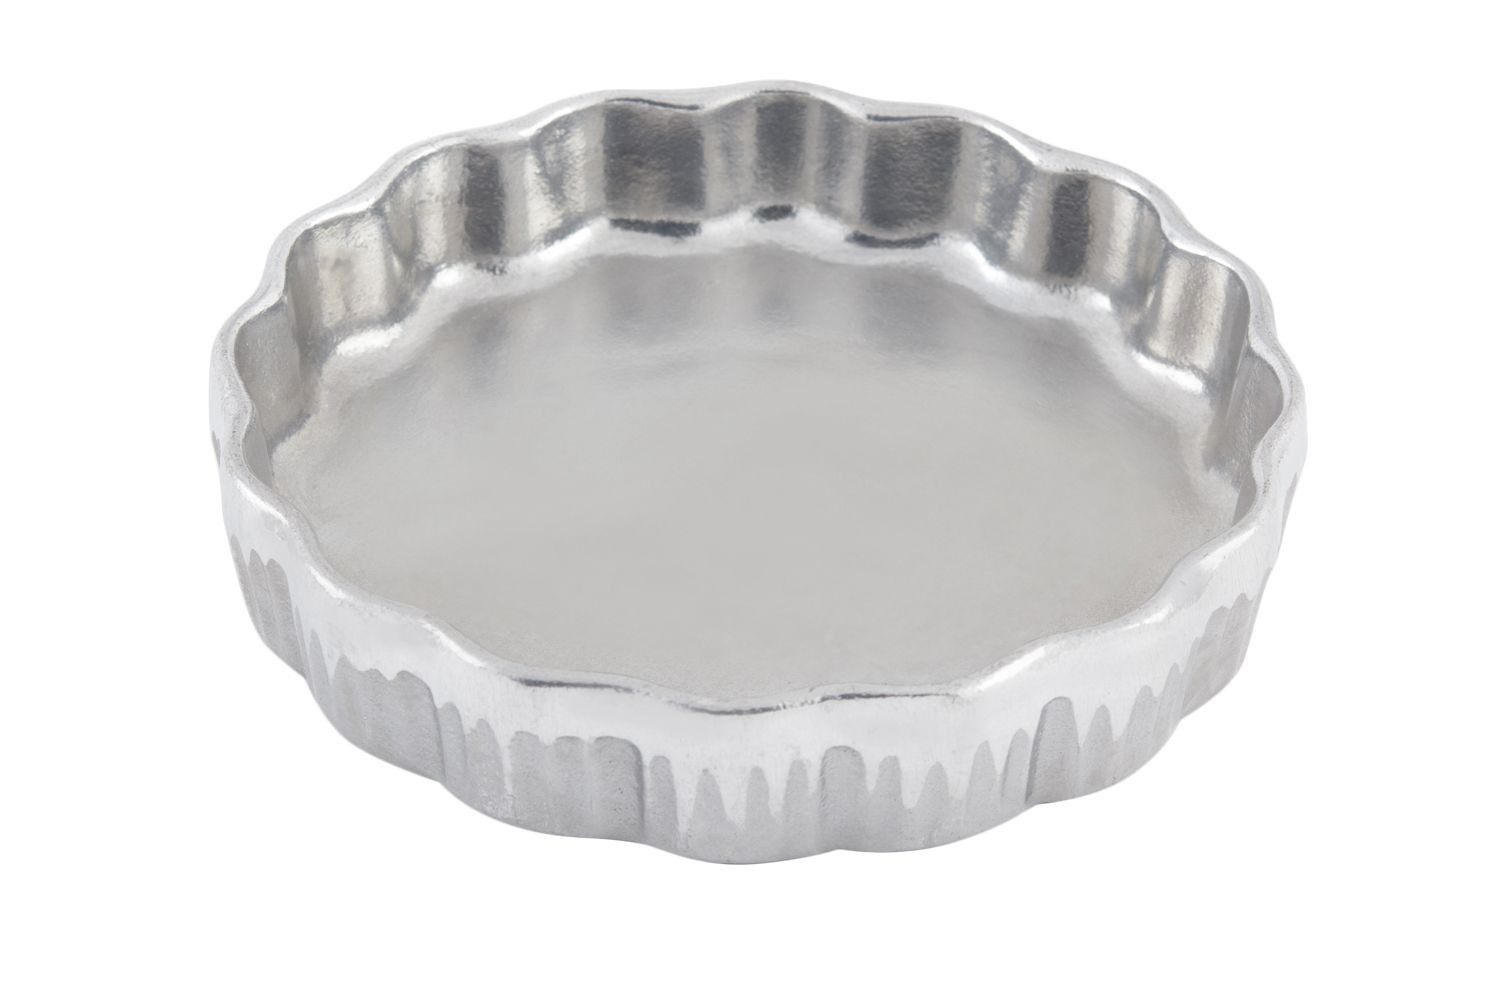 "Bon Chef 5032P Quiche Dish, Pewter Glo 5 1/2"" Dia., Set of 6"